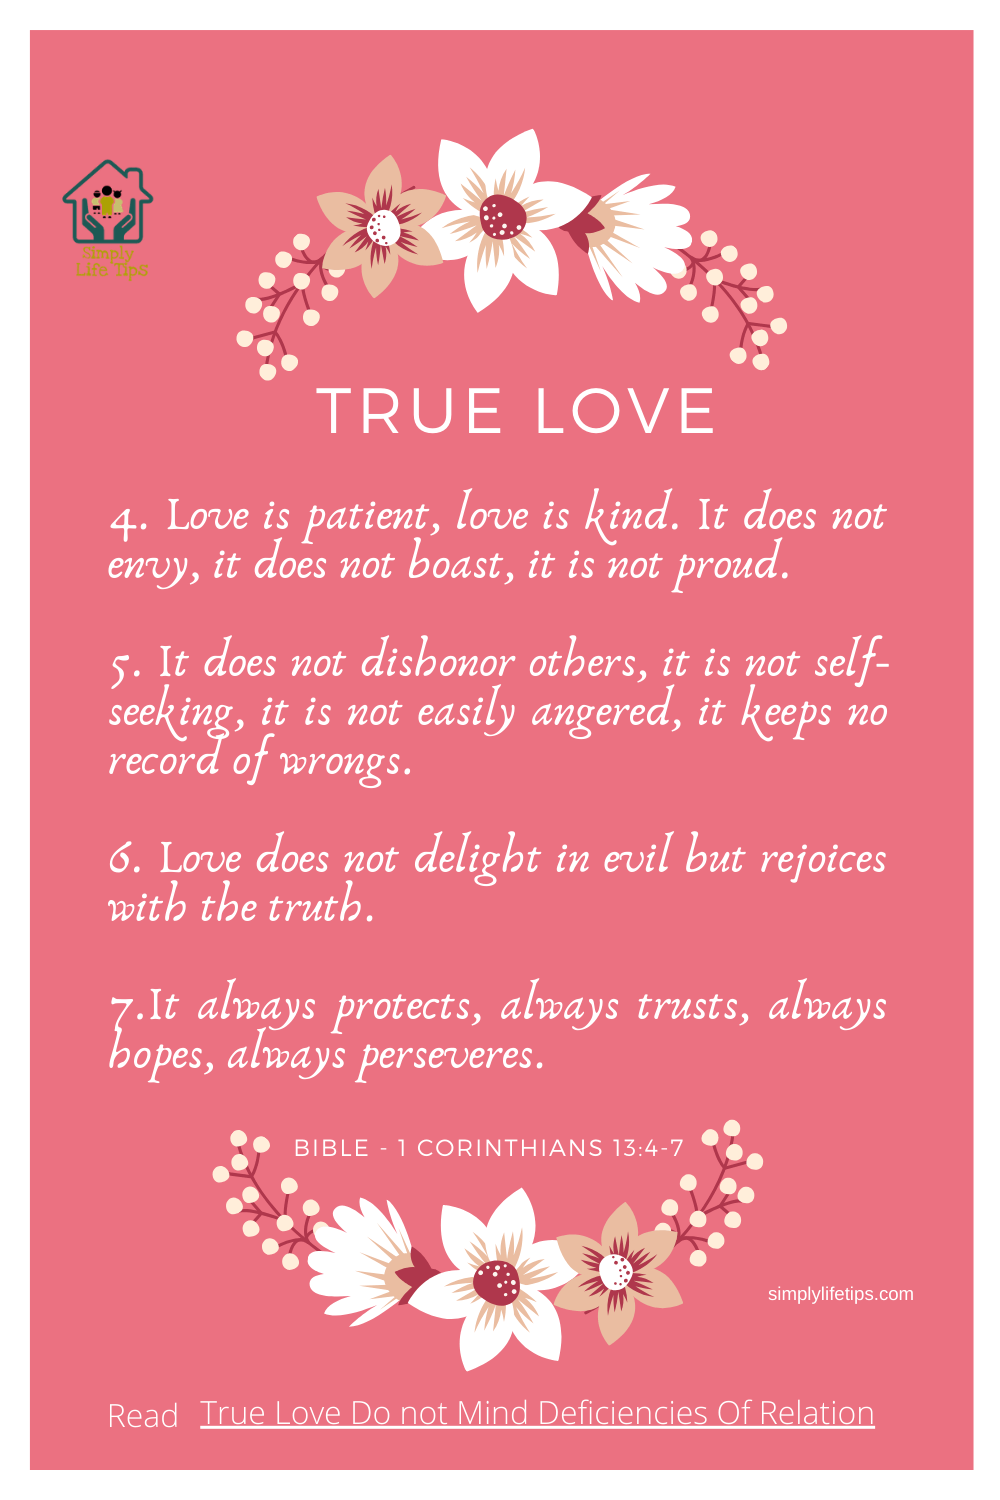 True Love Bible - 1 Corinthians 13:4-7